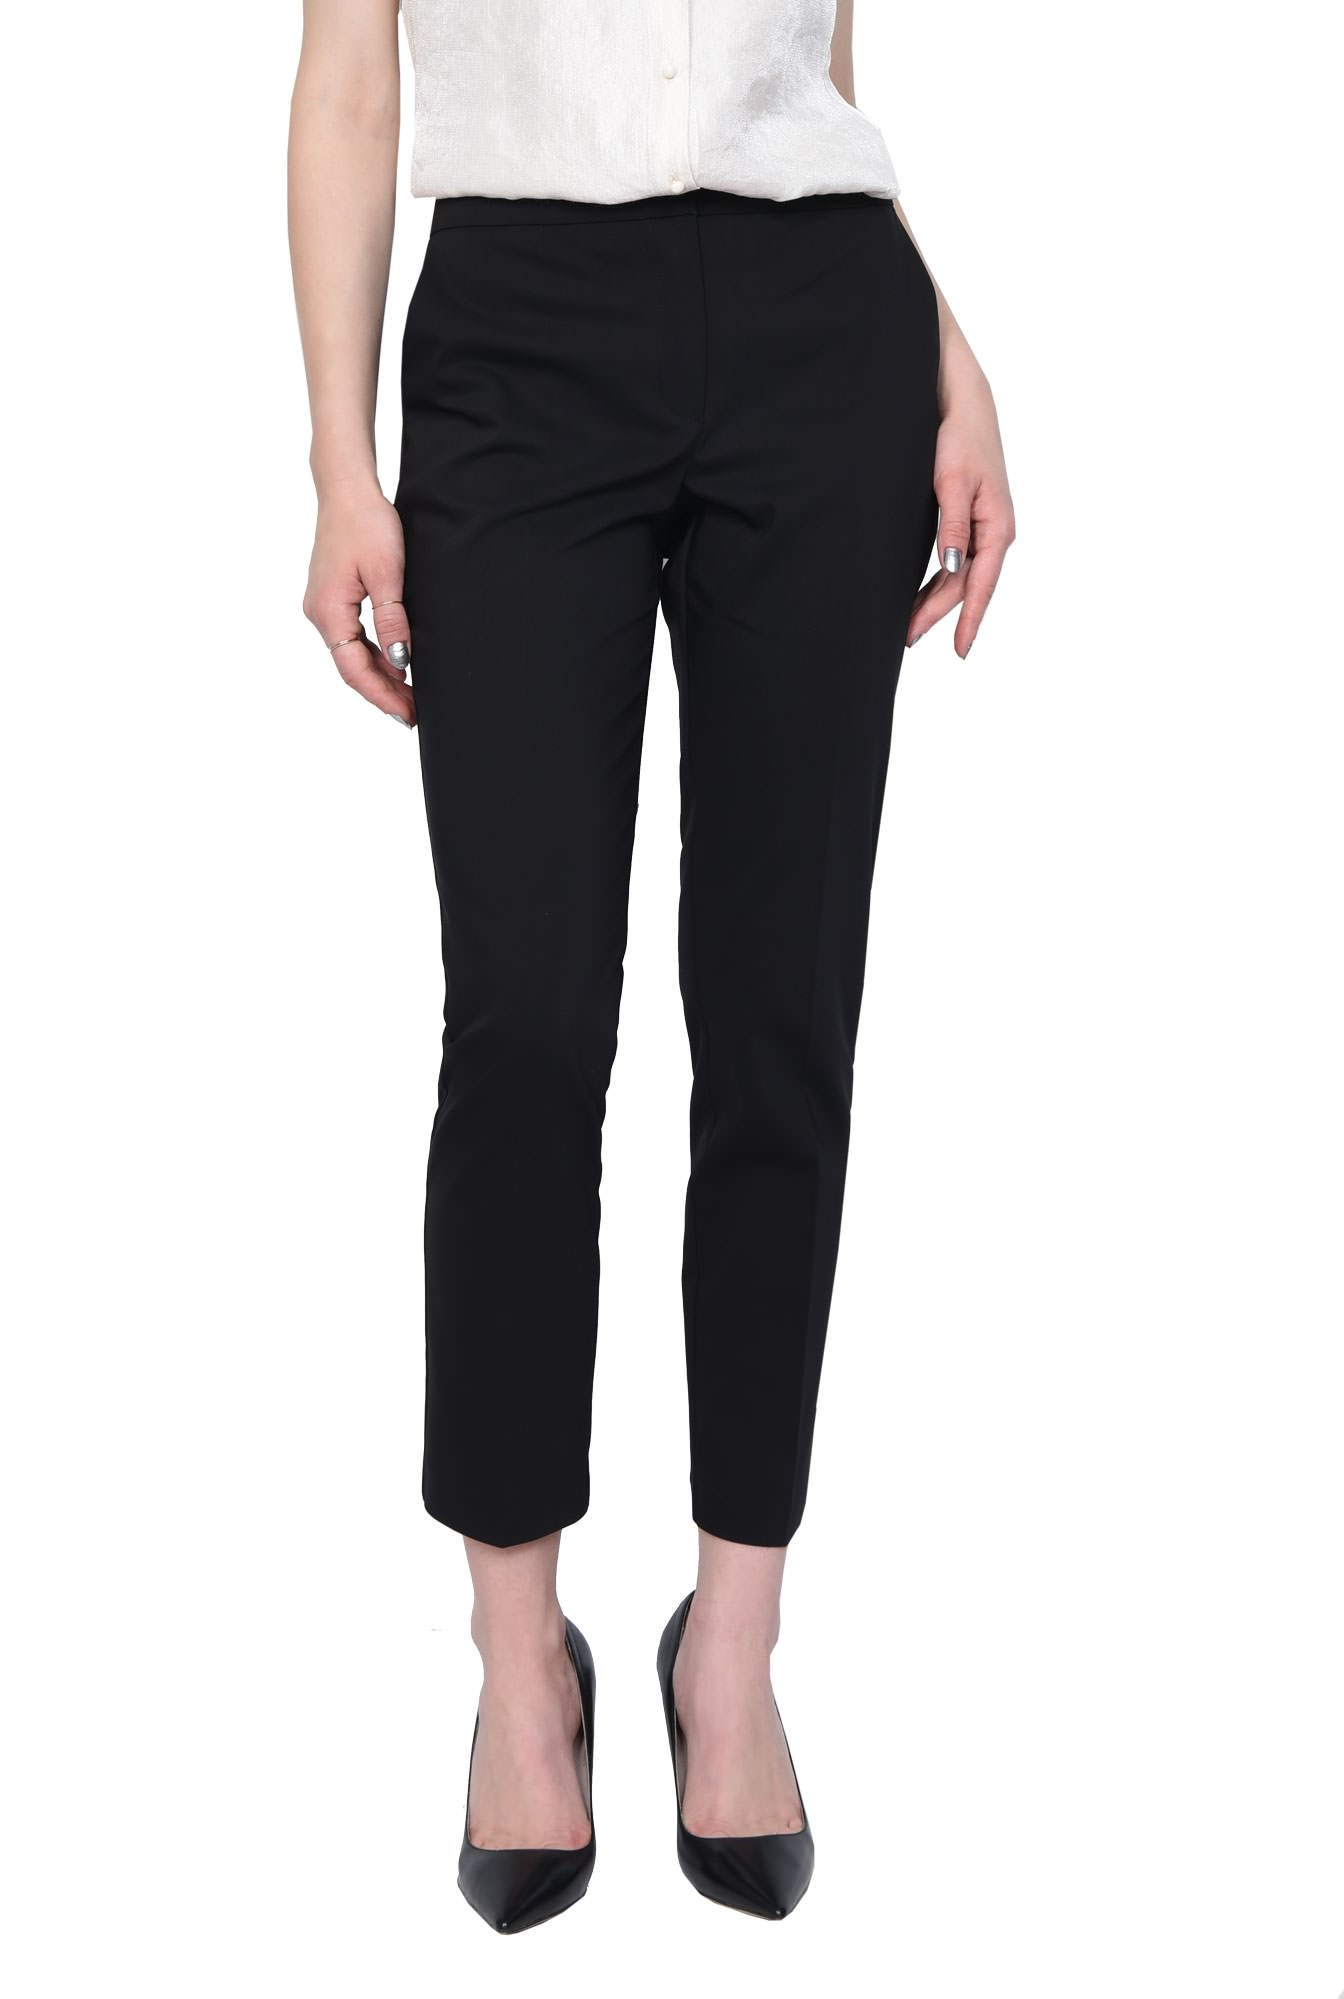 2 - PANTALON OFFICE CONIC PT 144-NEGRU